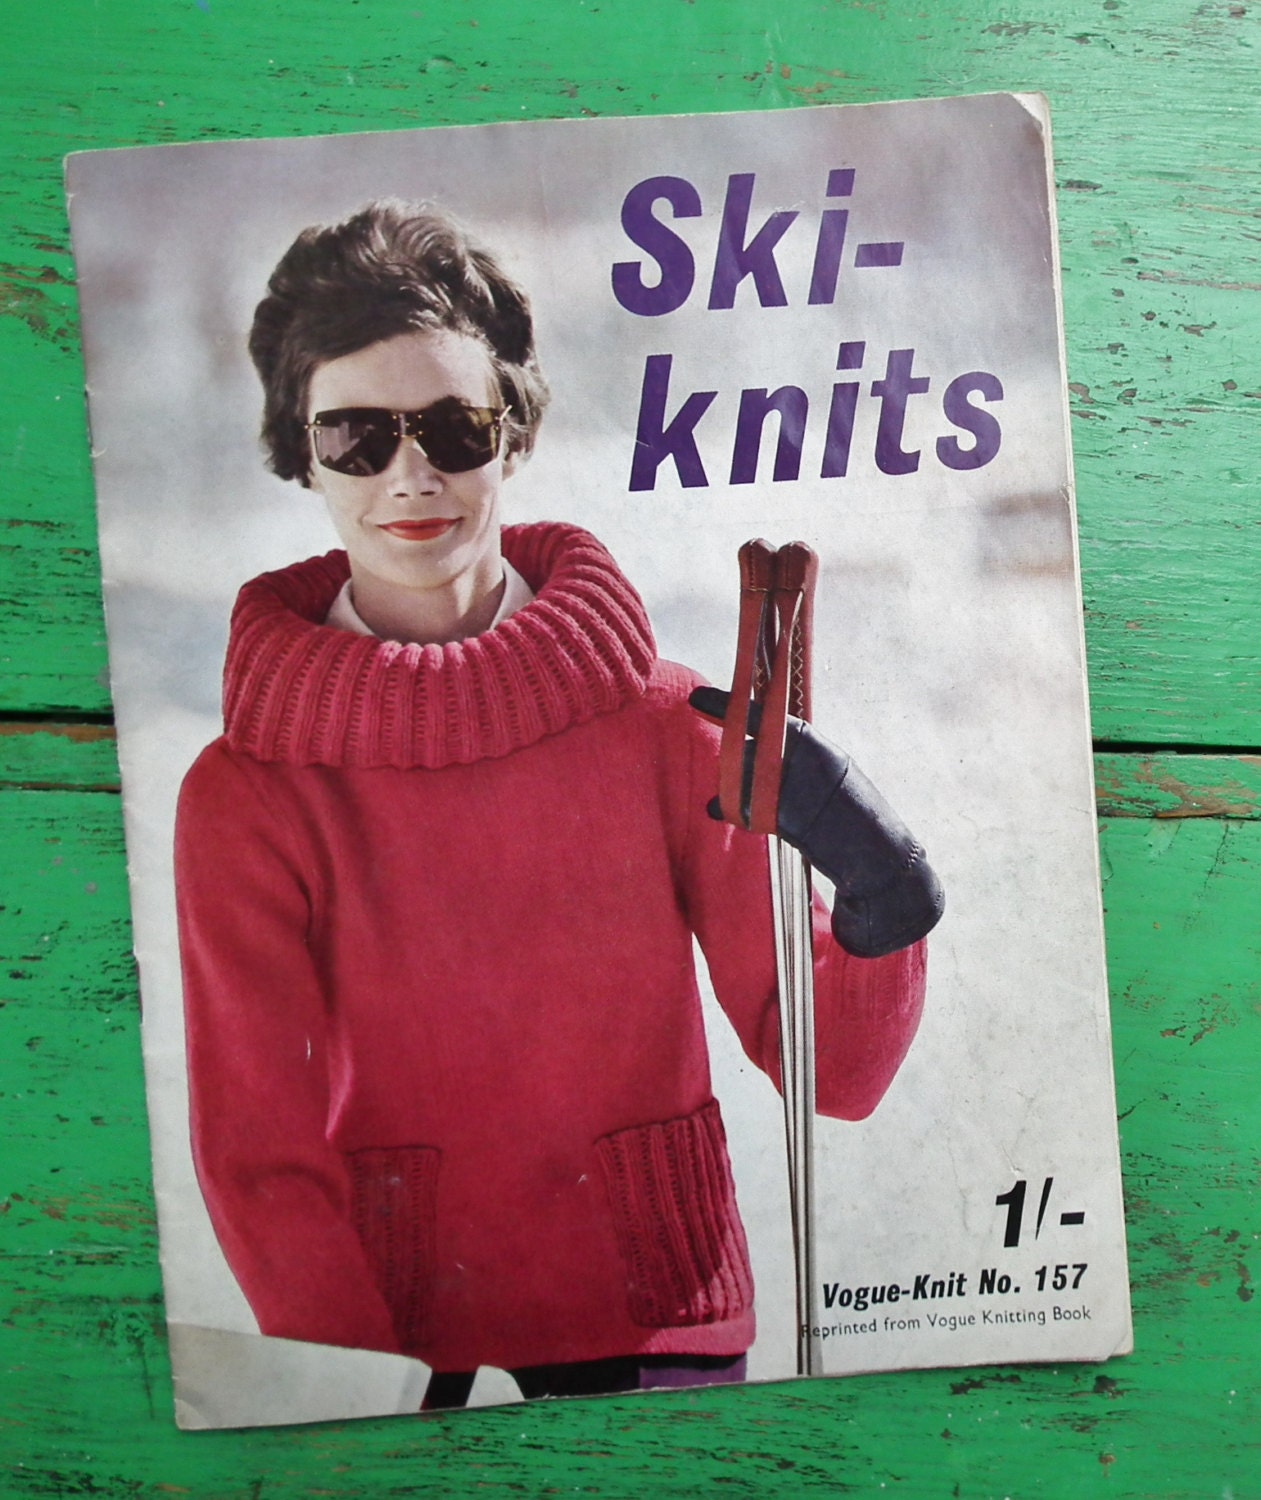 Vogue-Knit No. 157 Ski-Knits 1960 Vintage 50s 60s Vogue